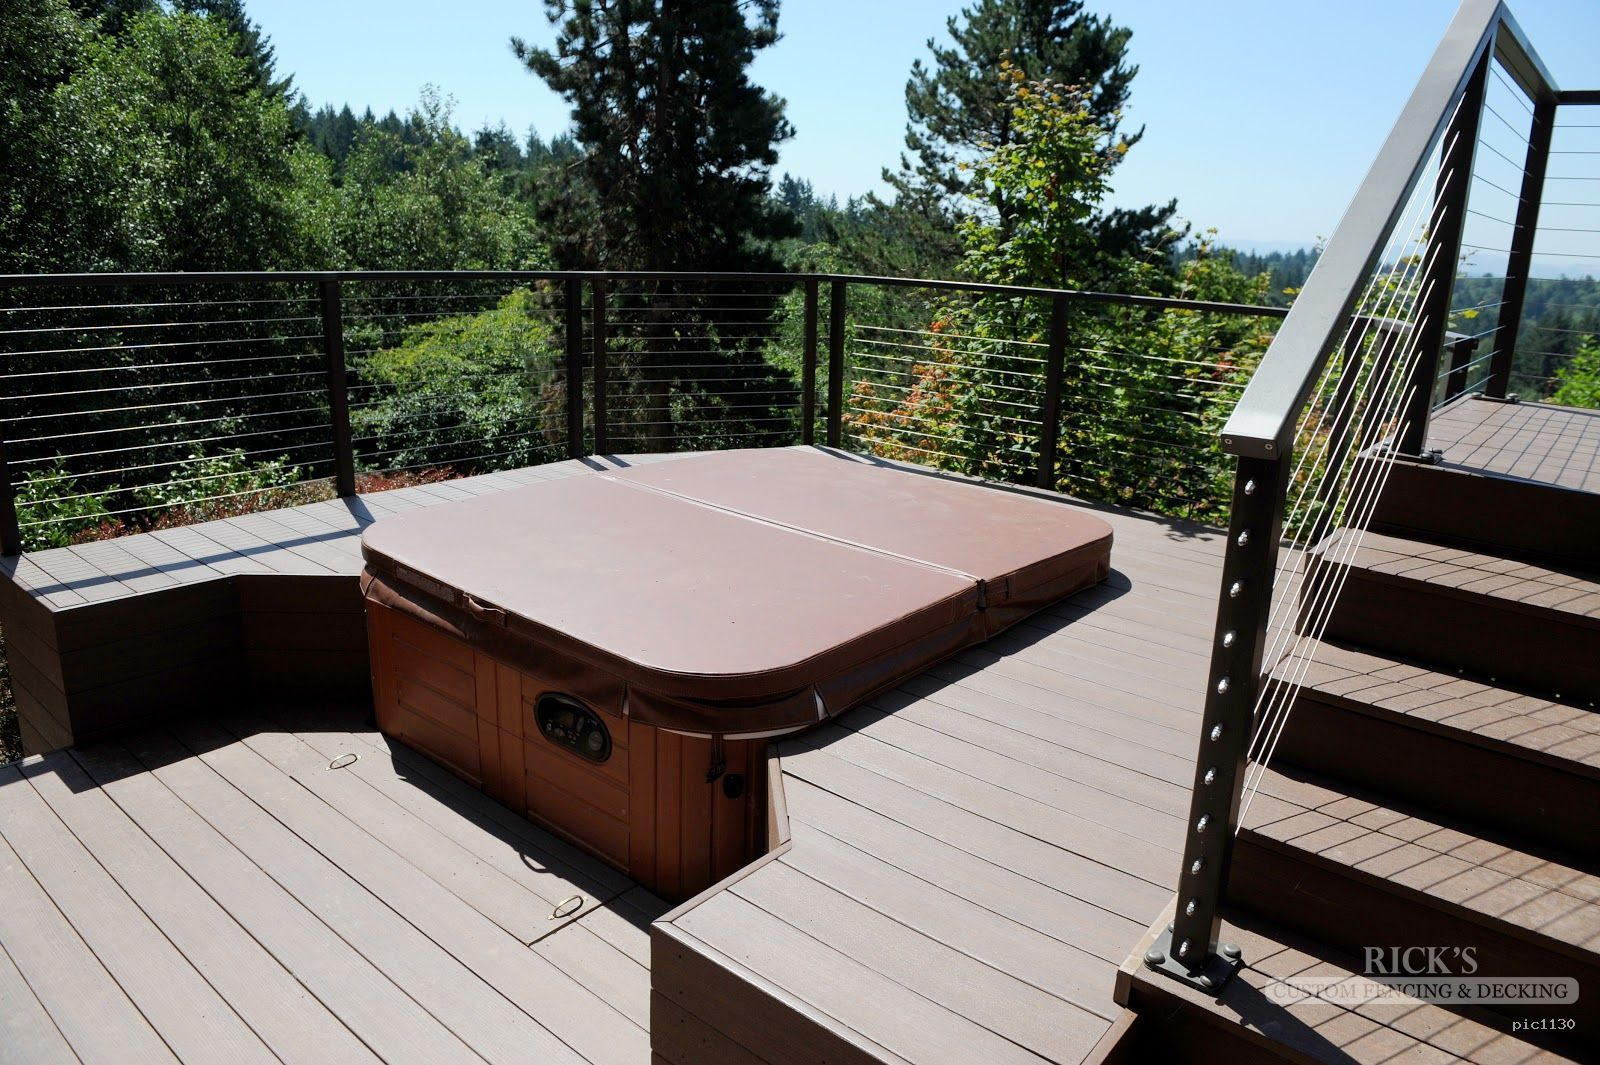 beautiful decking built around a tub adds a resort feel in